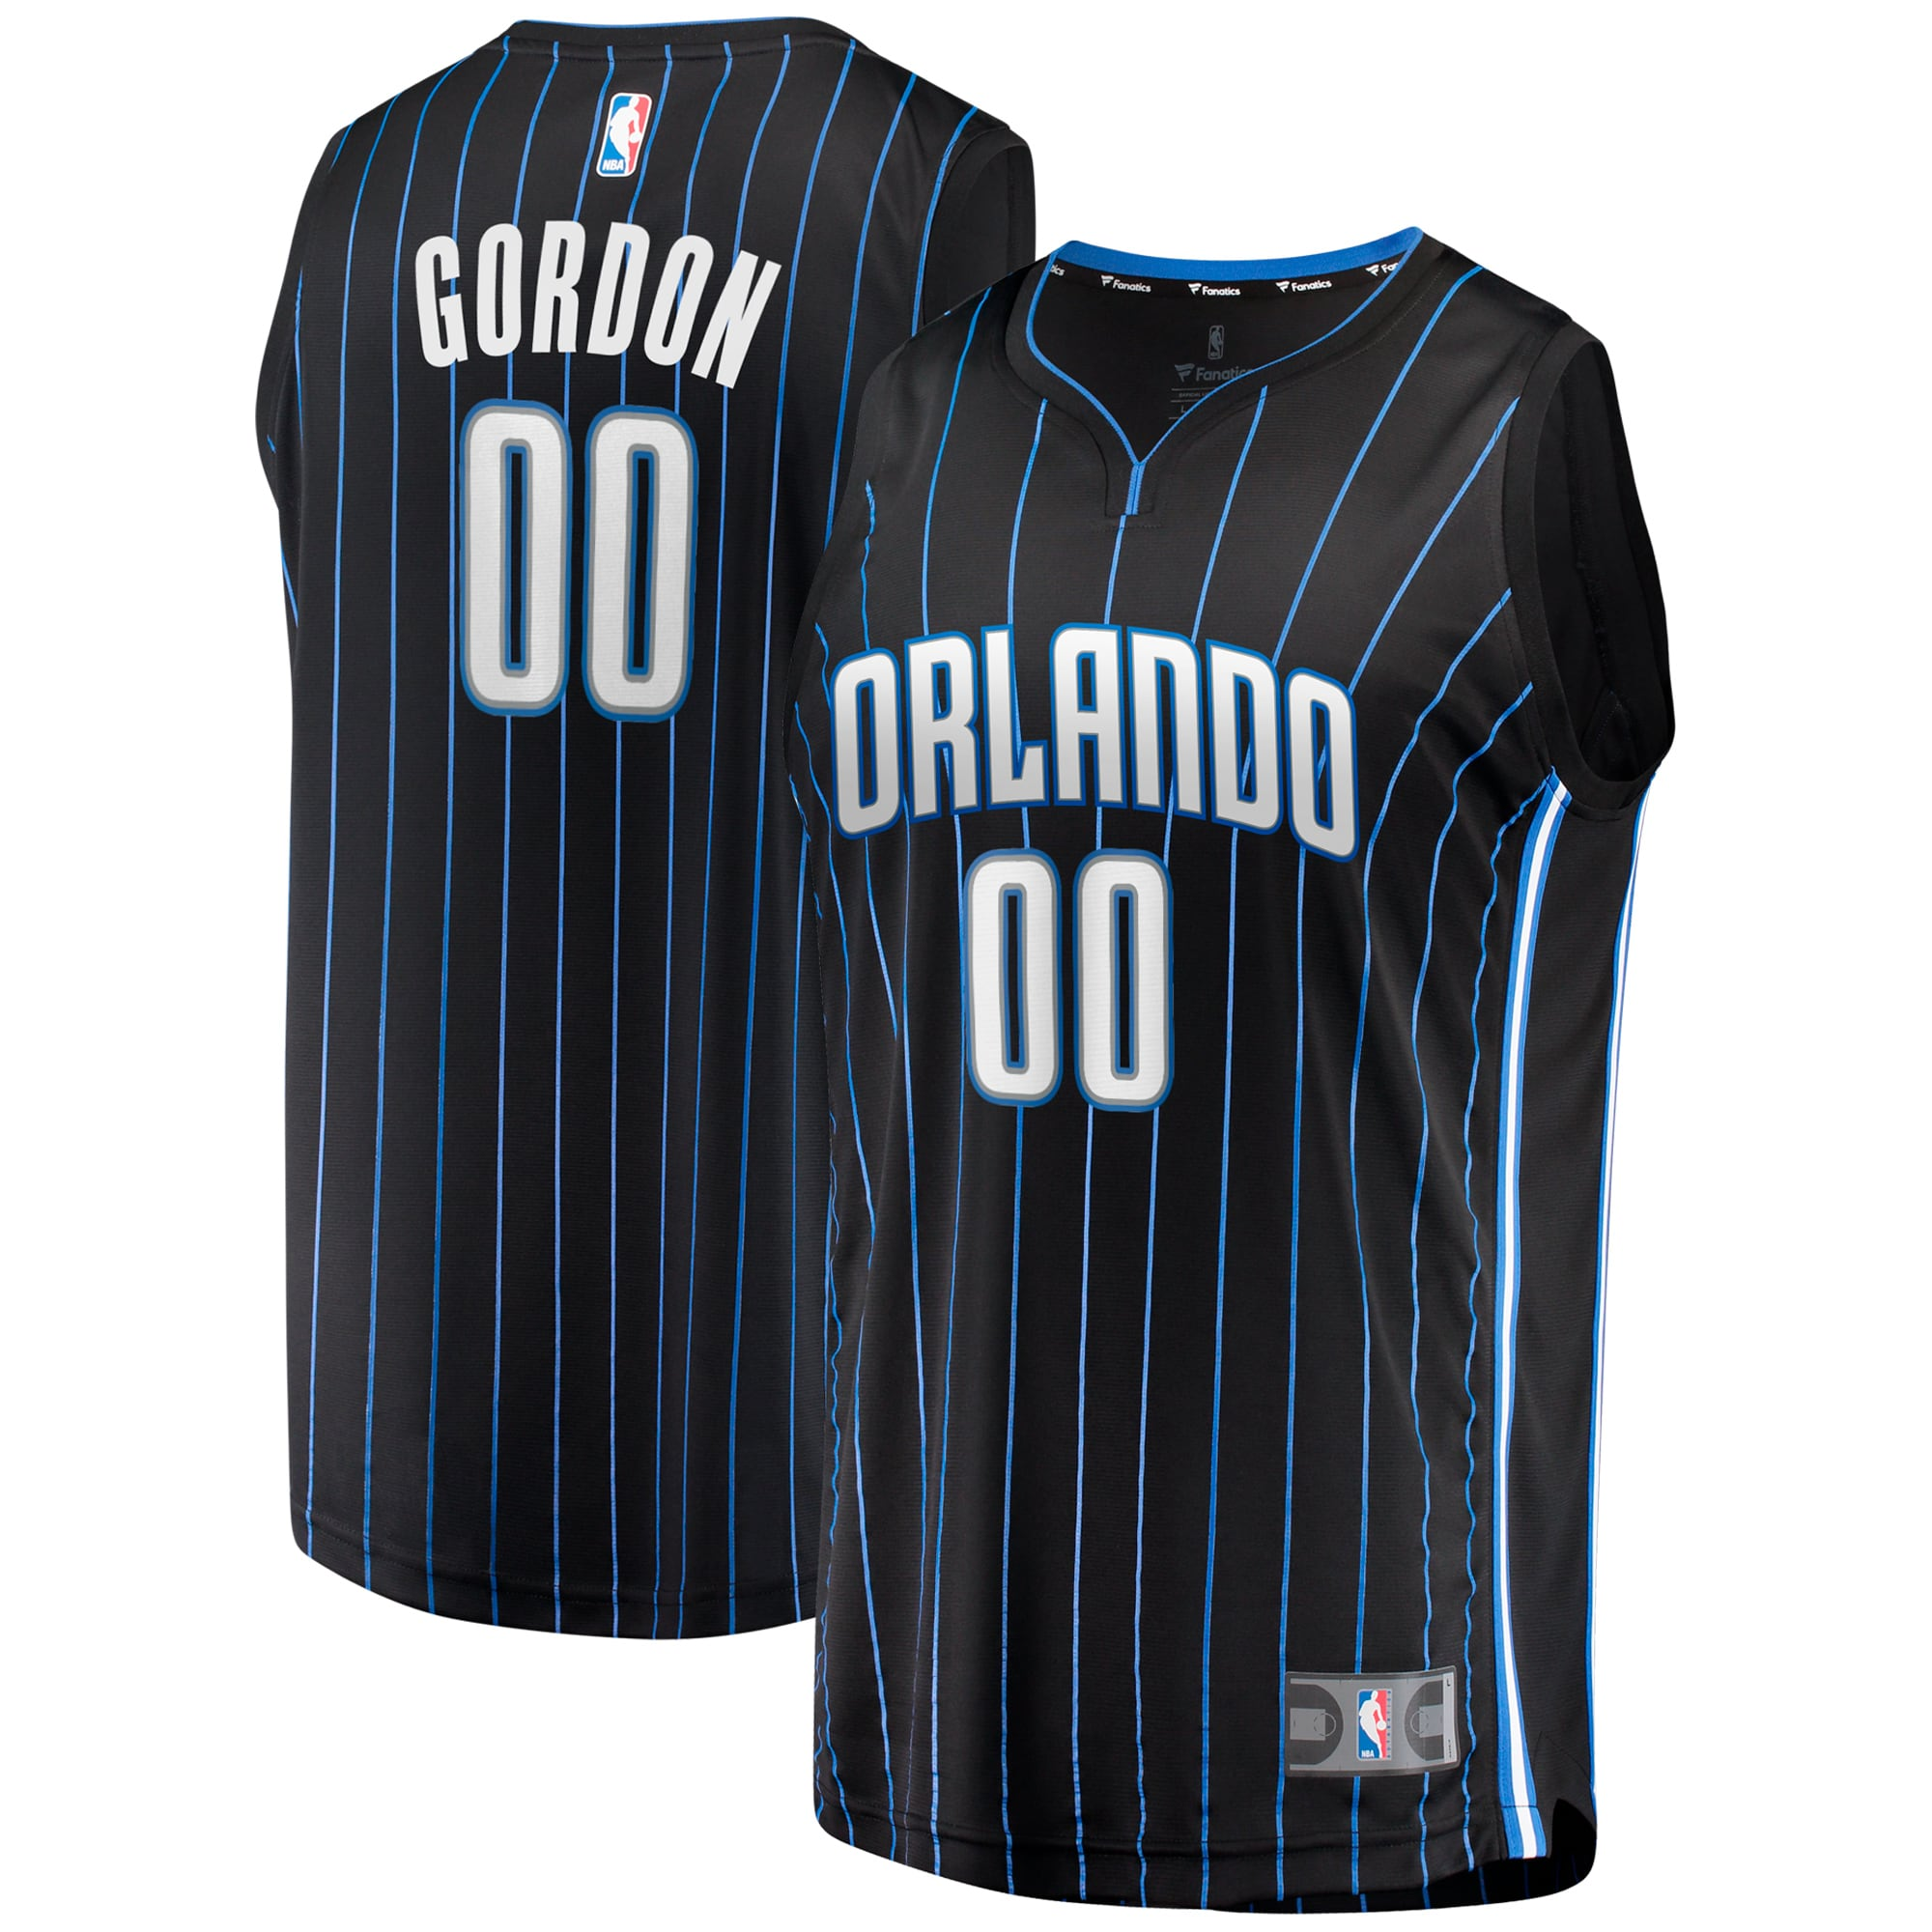 Aaron Gordon Orlando Magic Fanatics Branded Youth 2019 Fast Break Jersey Black - Icon Edition